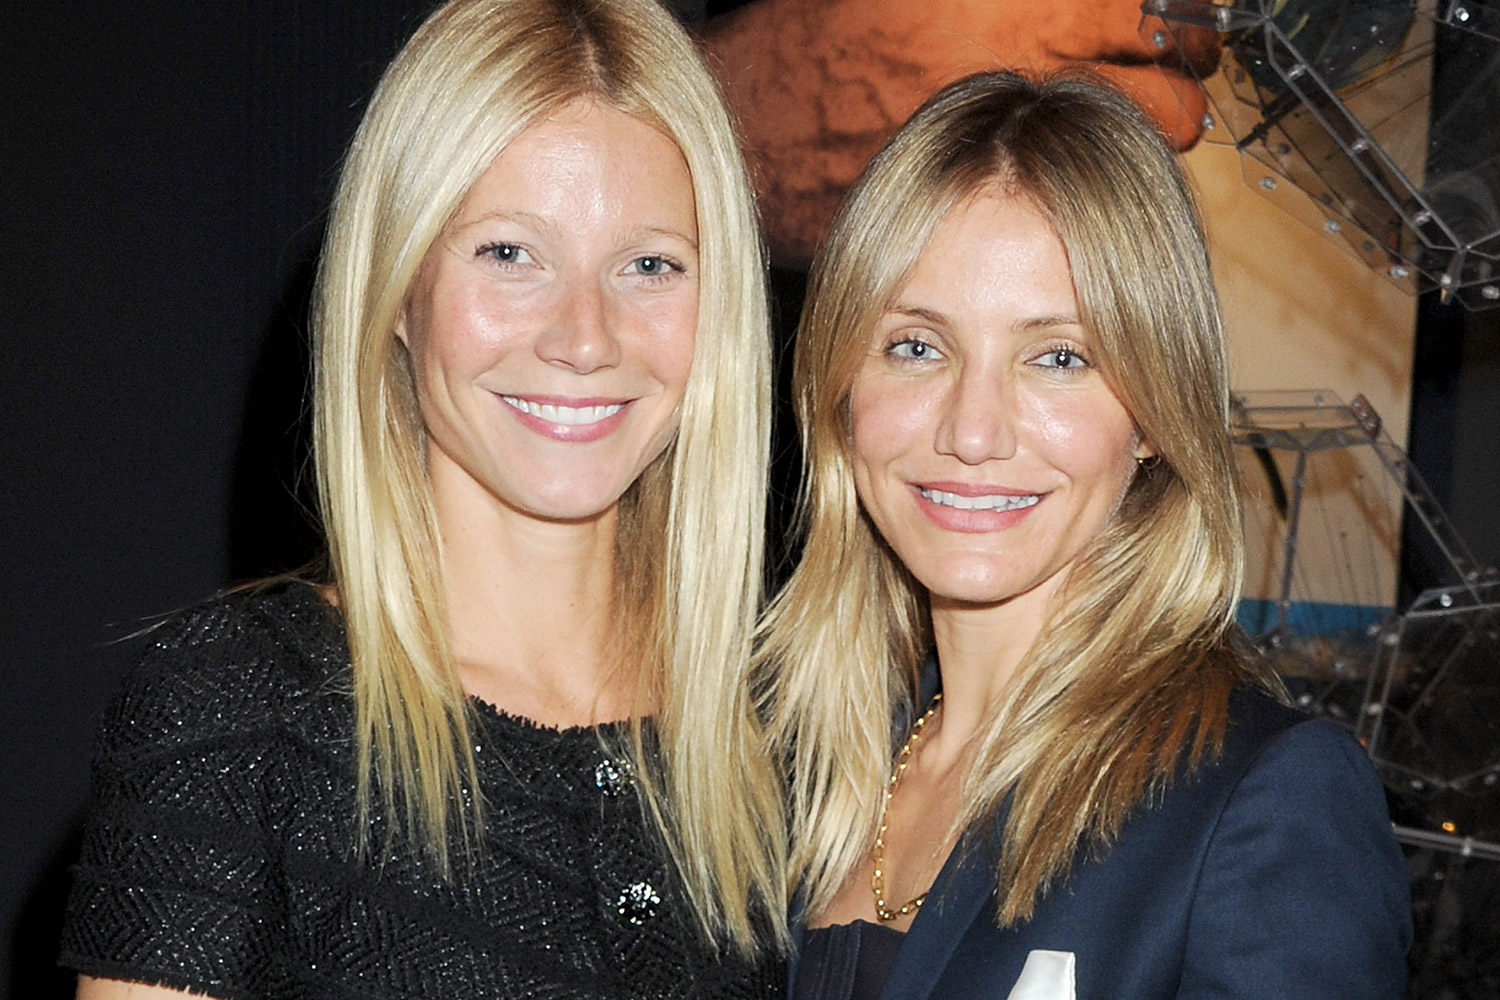 Gwyneth Paltrow and Cameron Diaz